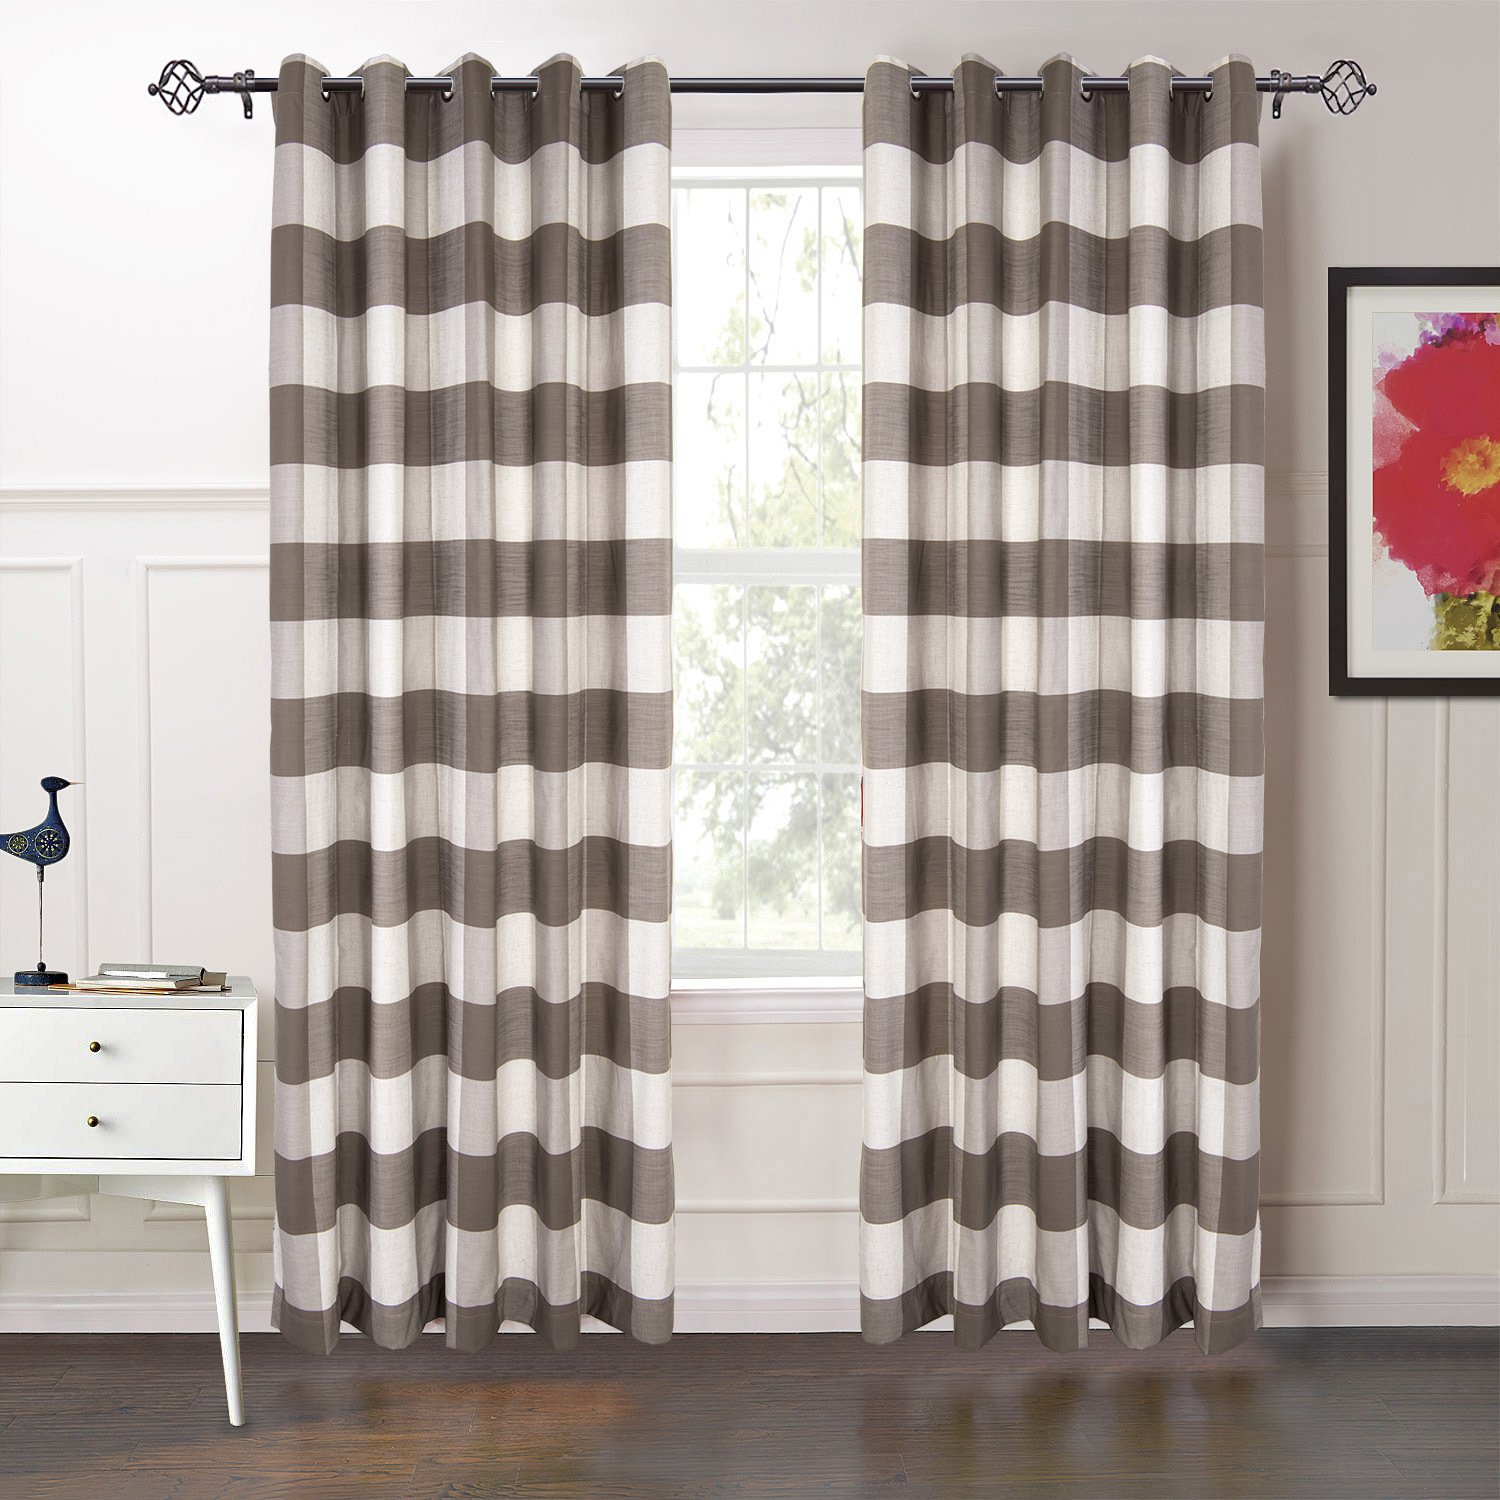 "MICHELE HOME FASHION 42"" W x 102"" L 20 (Set of 2 Panels) Custom 70% Blackout Striped Plaid Gingham Curtain Dark Brown Grommet Top Curtain for Kitchen,Bathroom,and Bedroom"